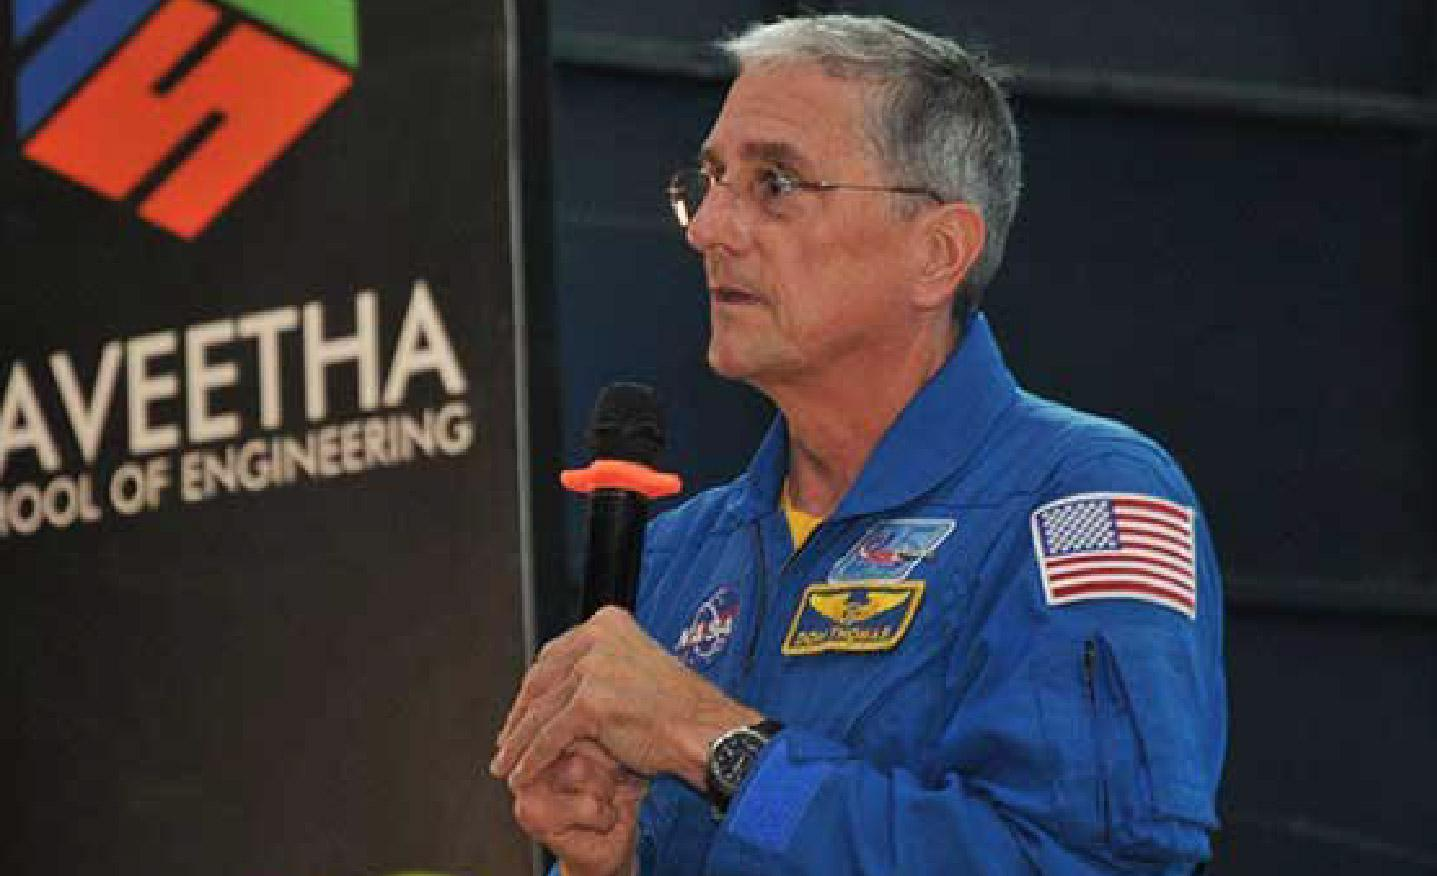 The number one lesson I have learnt in my life is to never give up: Donald Thomas talks about becoming a NASA astronaut